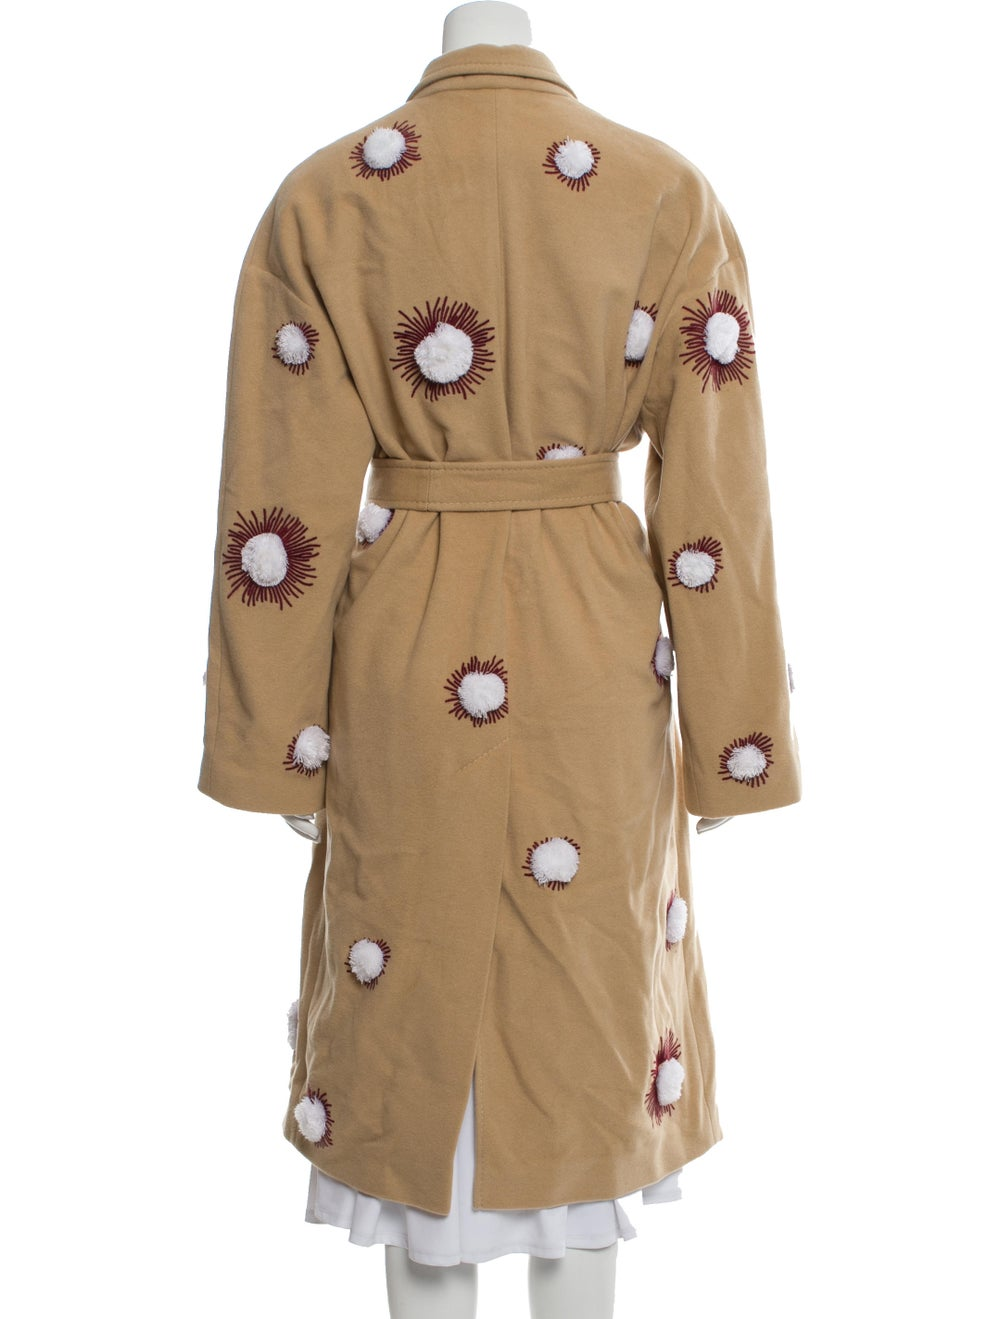 March 11 Embroidered Long Coat - image 3